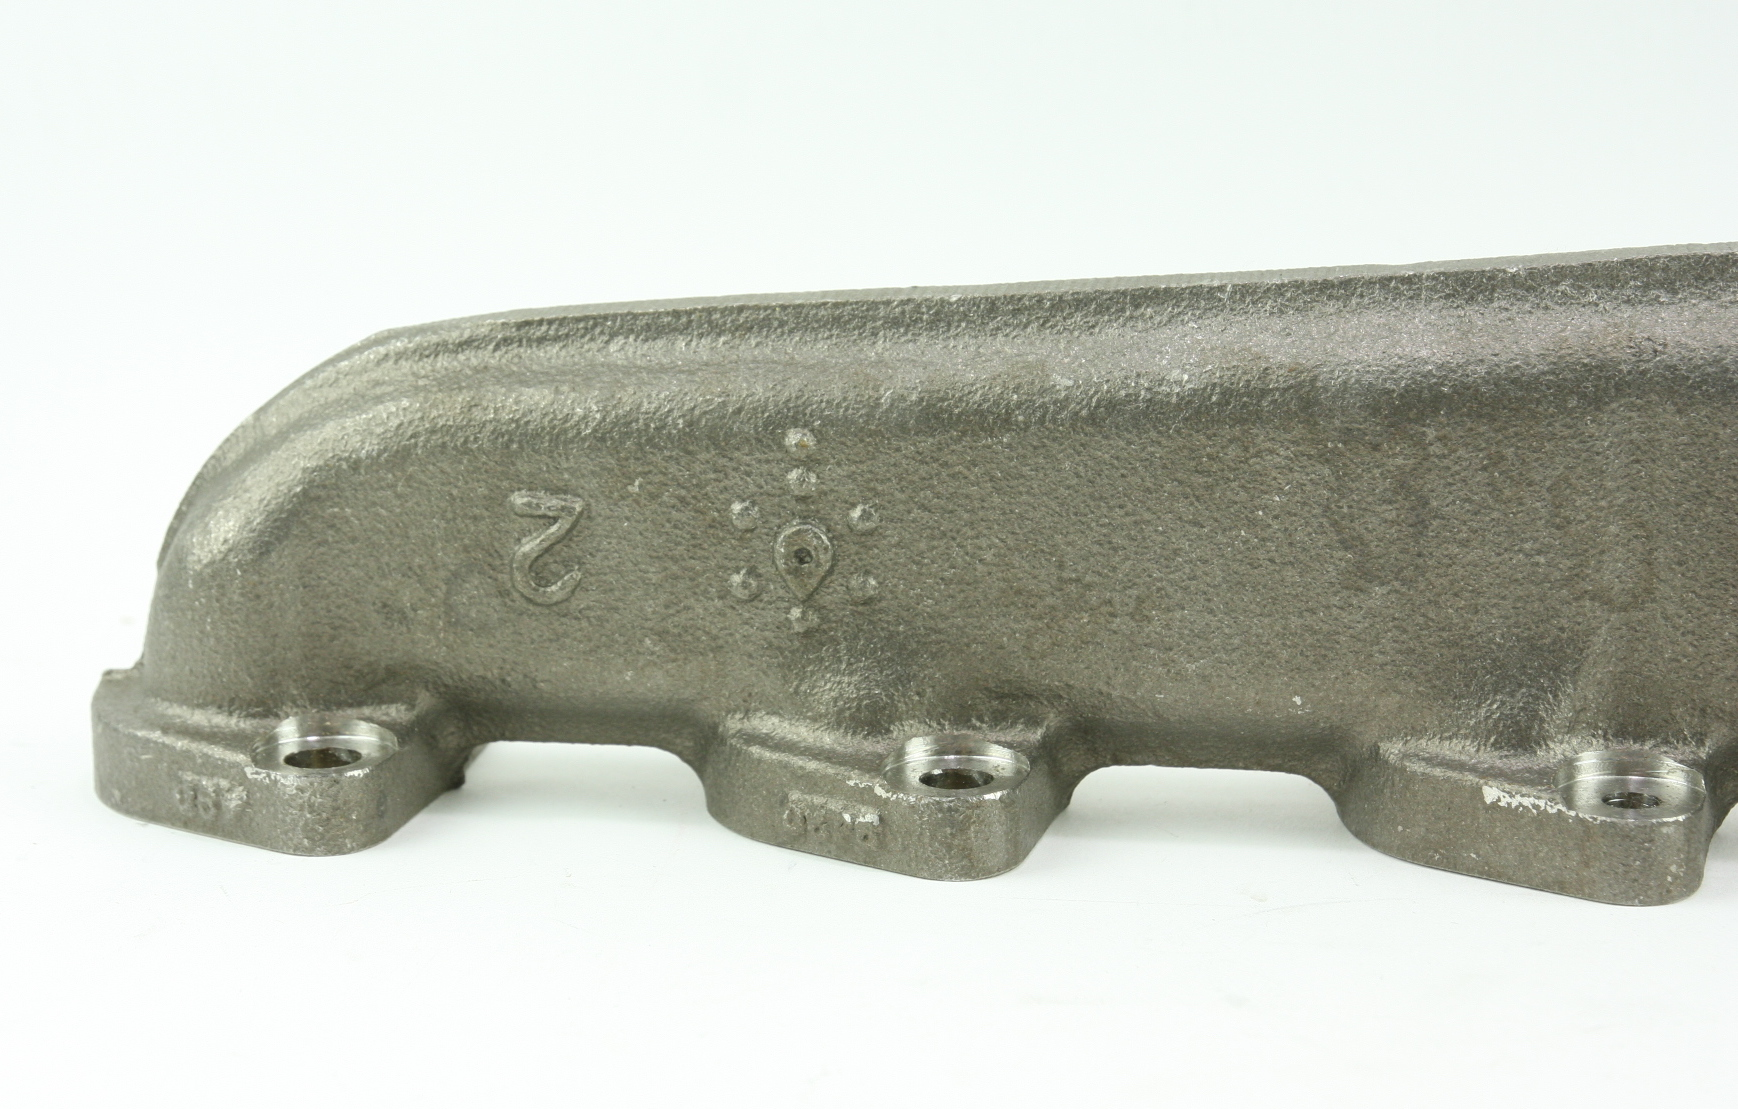 * New OEM YC2Z9430AA Ford 00-14 Super Duty 6.8L V10 Exhaust Manifold Free Ship! - image 5